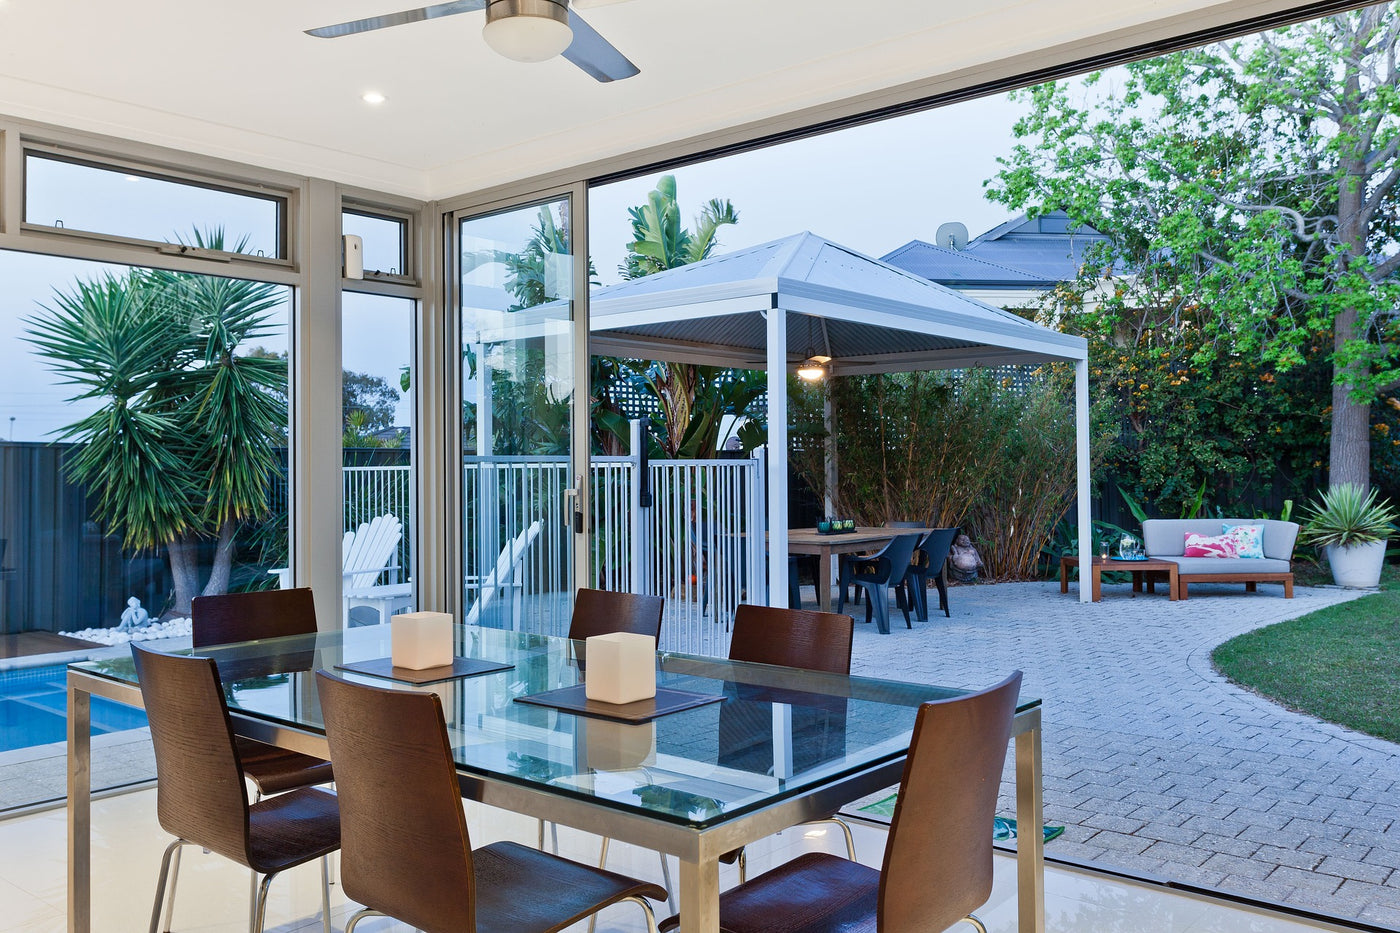 Ideas and Inspiration for Dining Alfresco